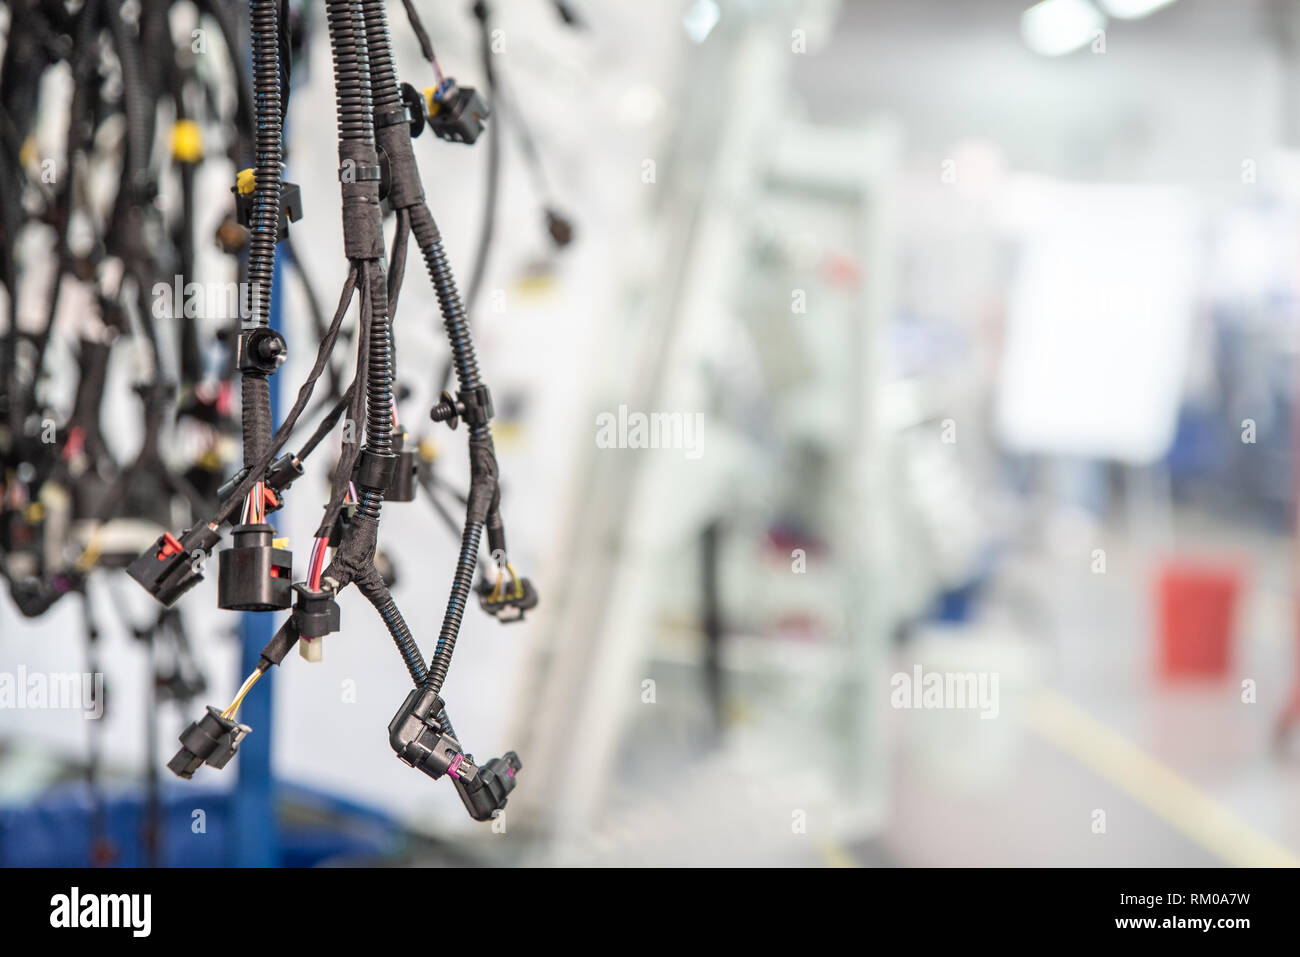 hight resolution of bunch of wiring harnesses automobile industry background with copy space stock image